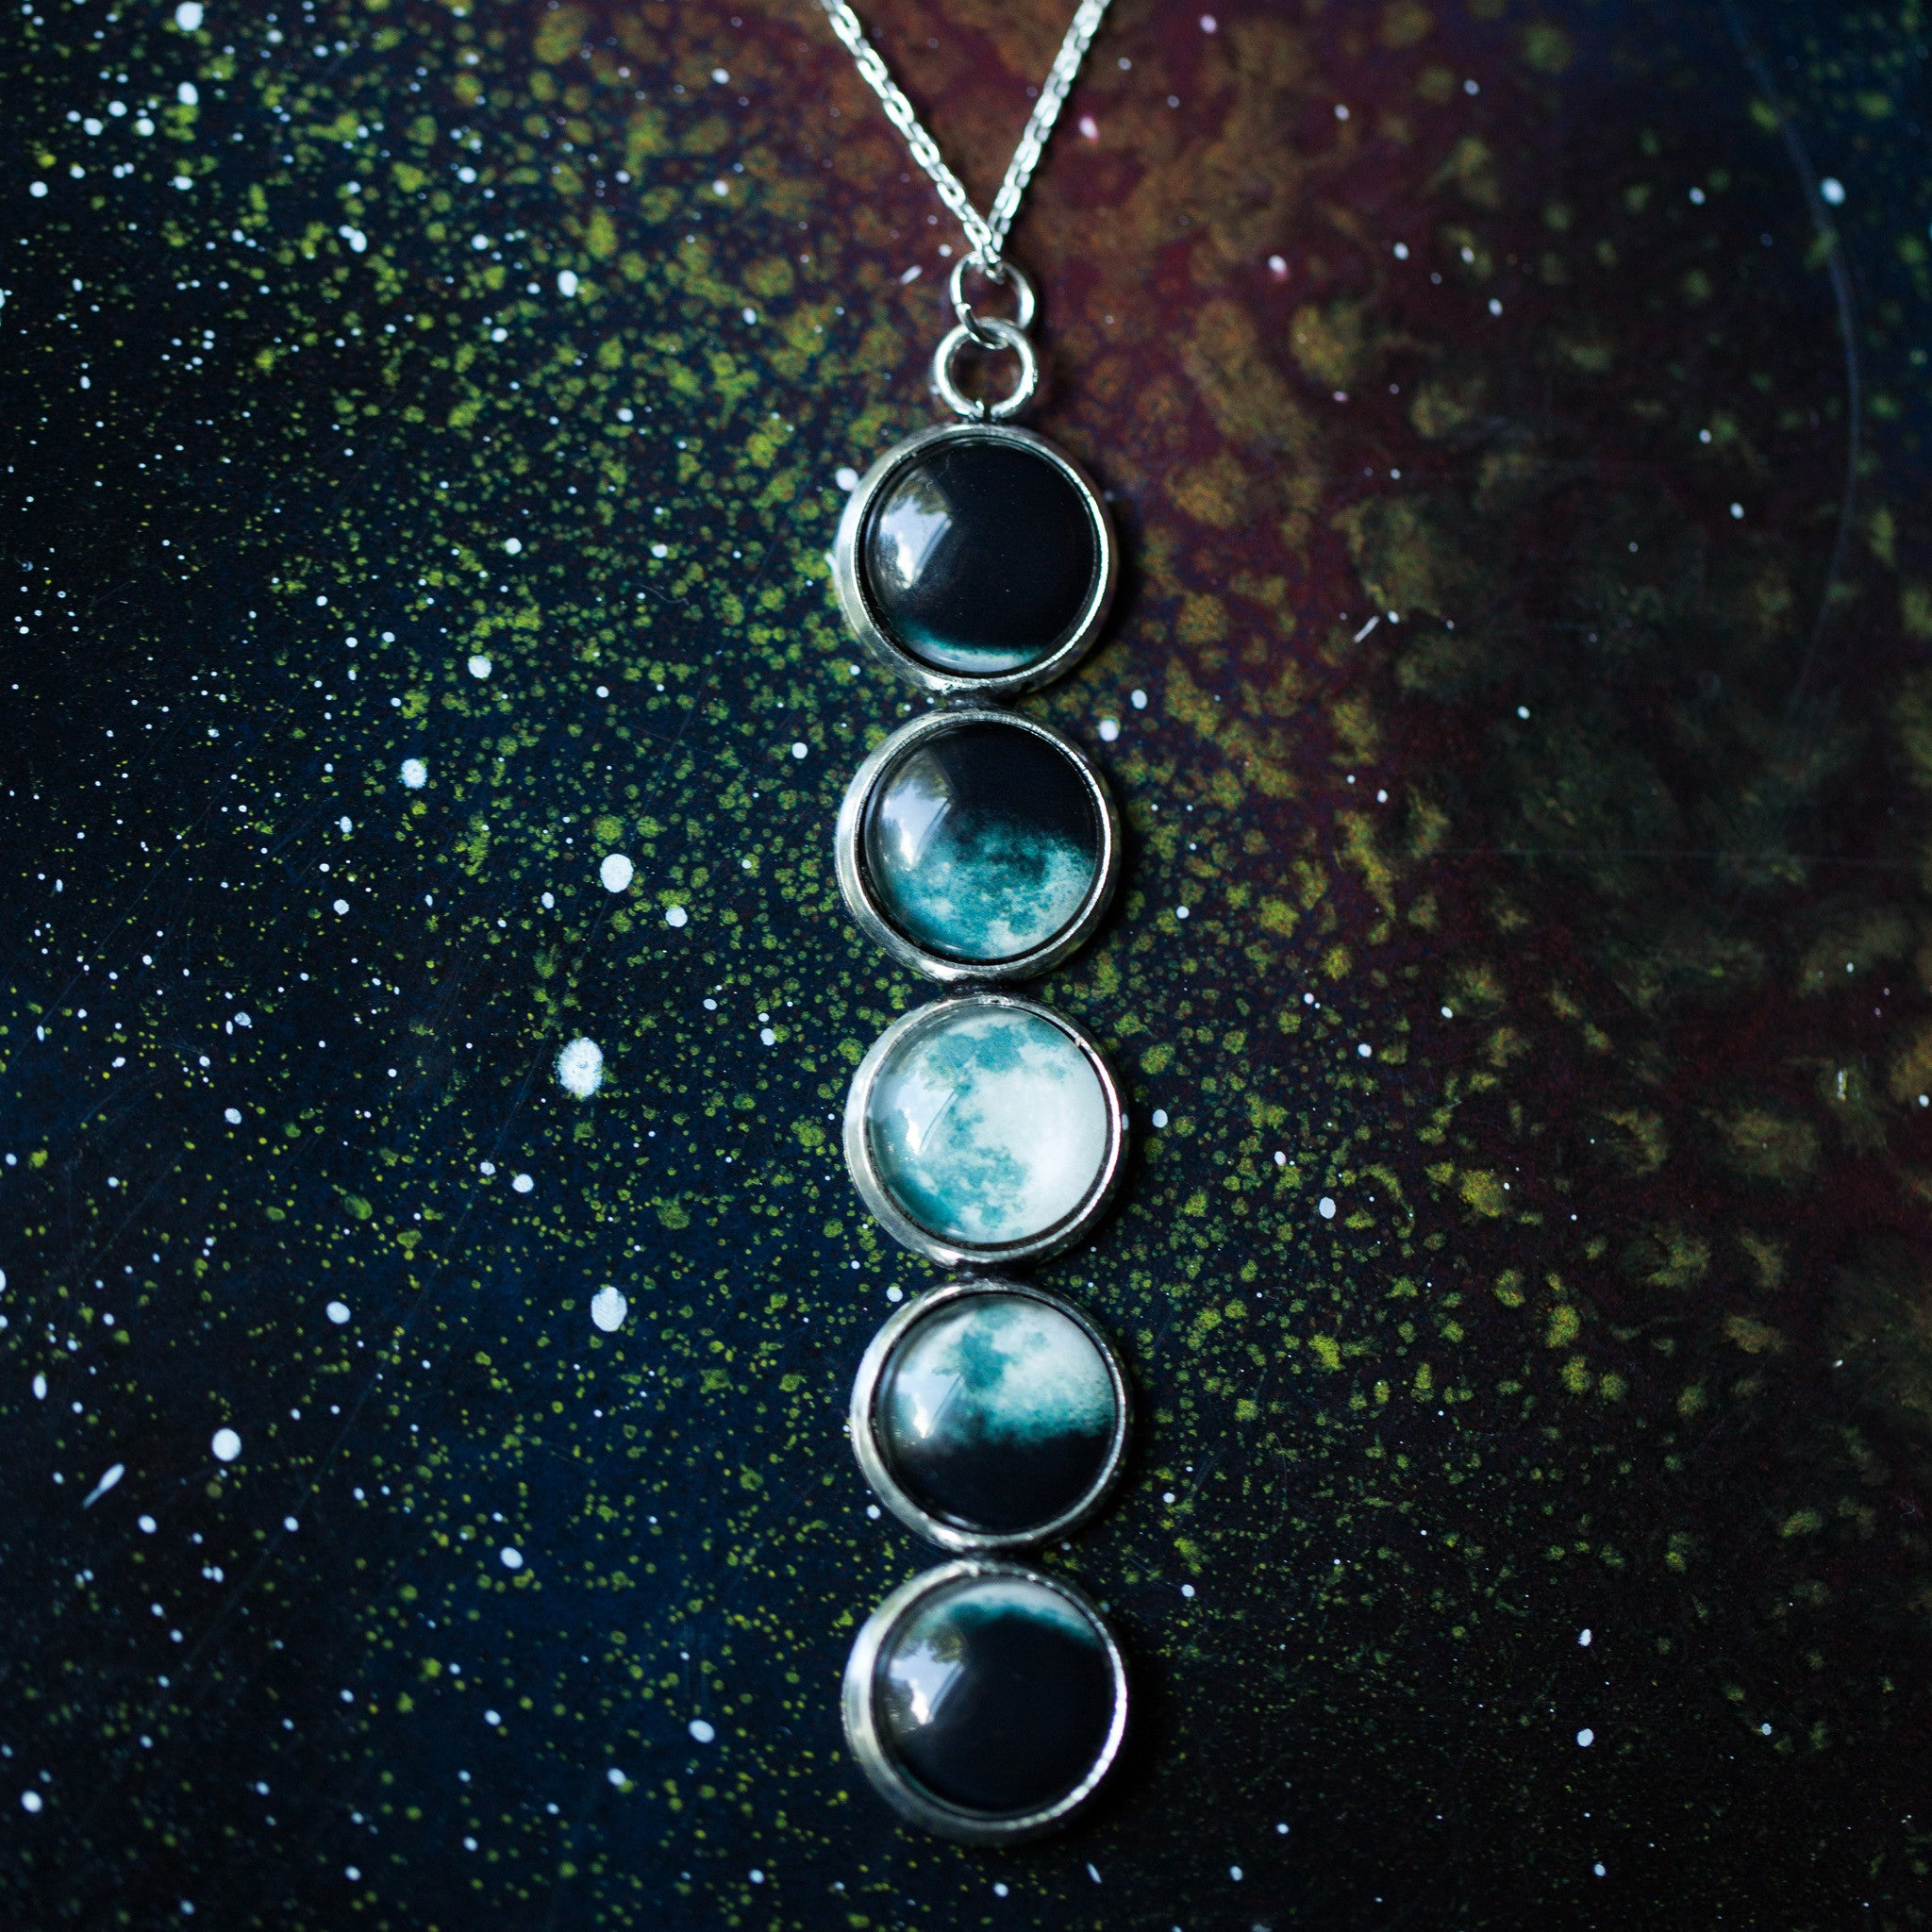 Moon Phase Pendant Necklace - Yugen Tribe